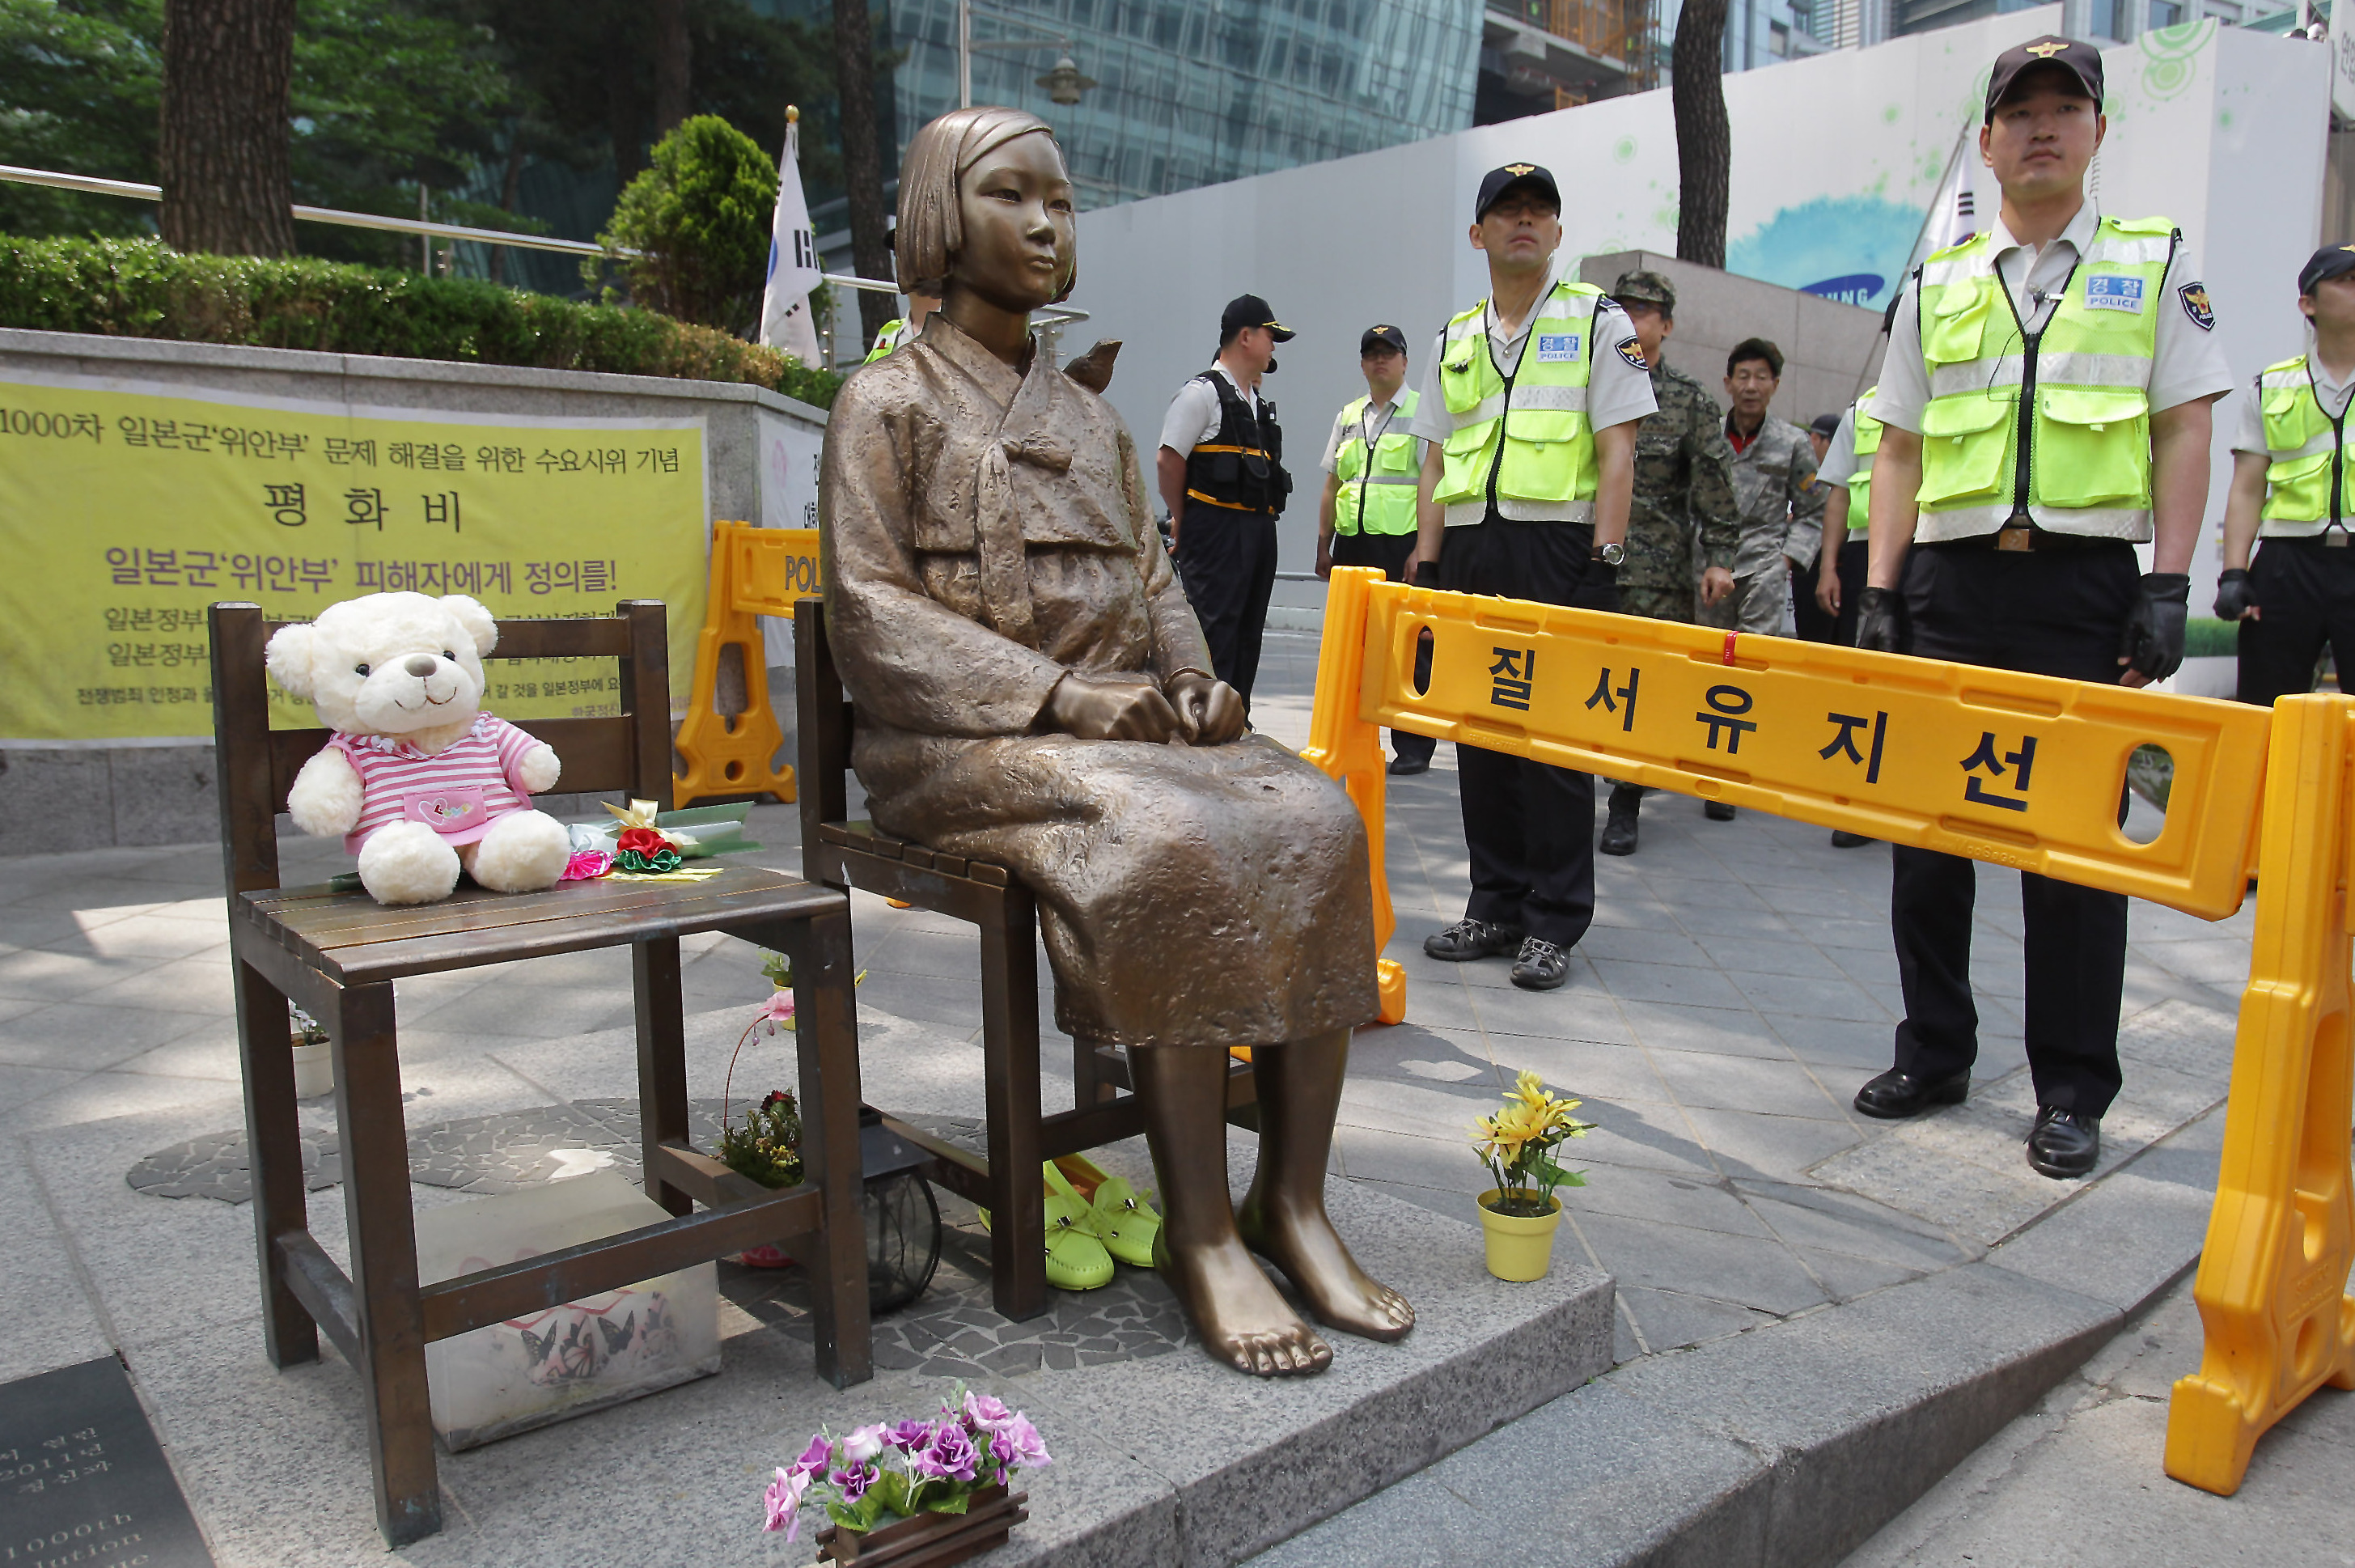 """South Koreans Angry at """"Comfort Women"""" Settlement That Calls for the Removal of Memorial Statue"""